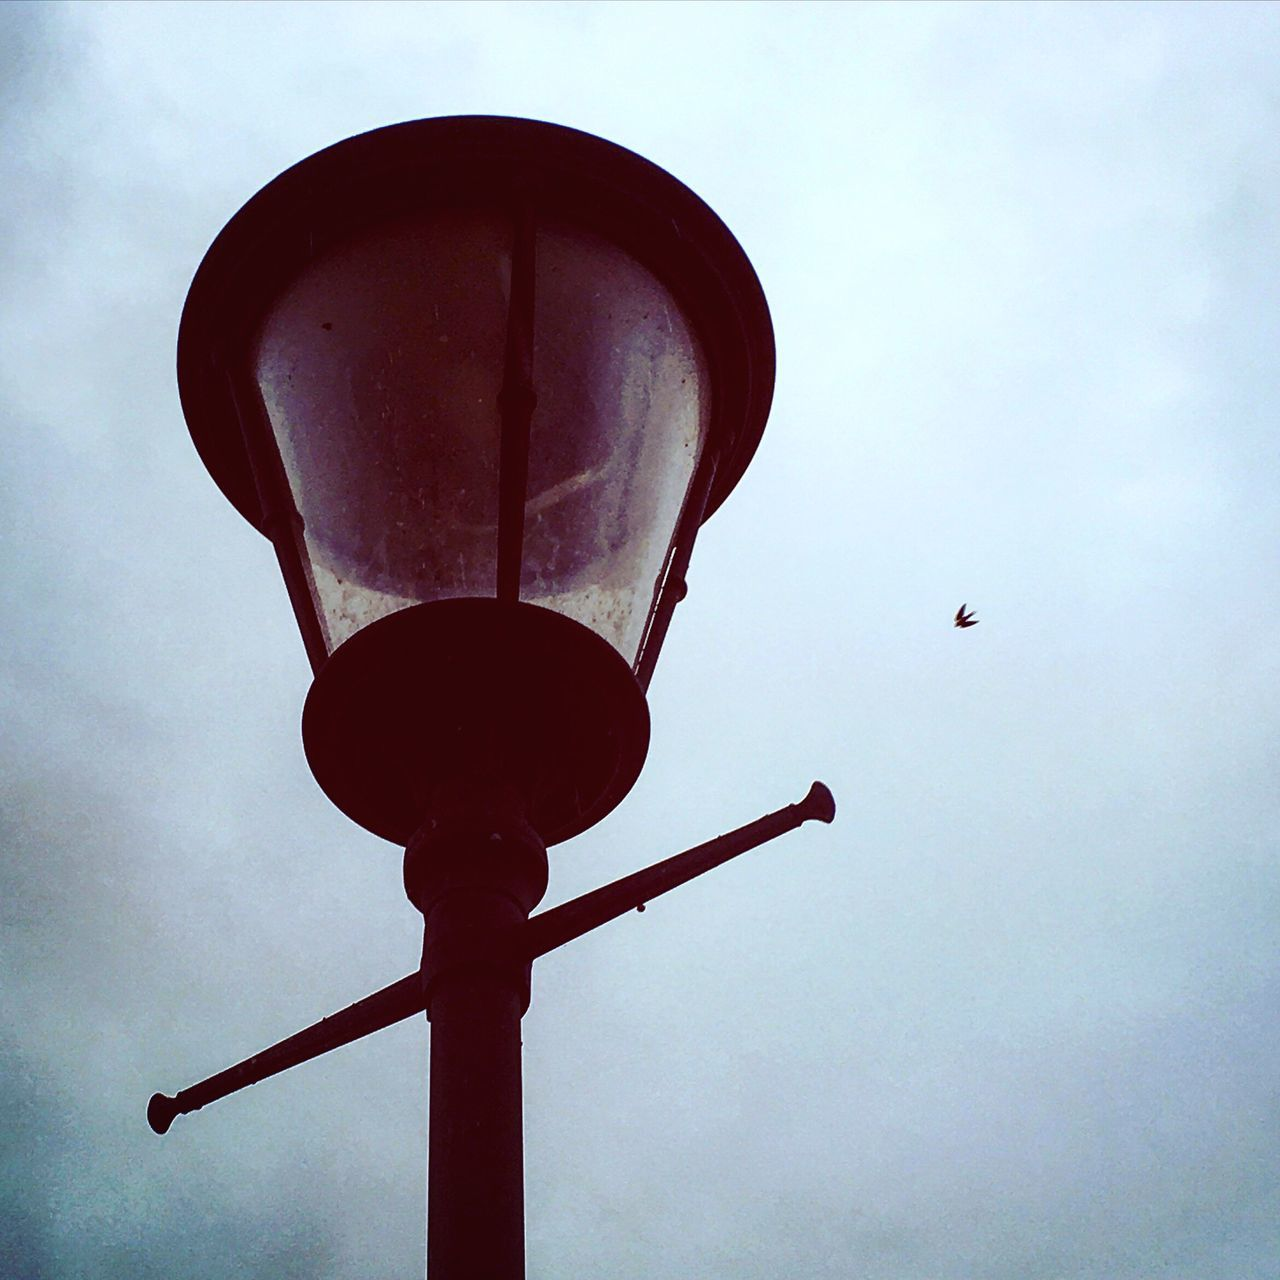 Street lamp and a bird flying in the sky Low Angle View Sky No People Cloud - Sky Outdoors Nature Day Close-up Street Lamp Bird Birds Fly Flying Flying High Flying Bird Poetry Poetry In Pictures Poetrycommunity